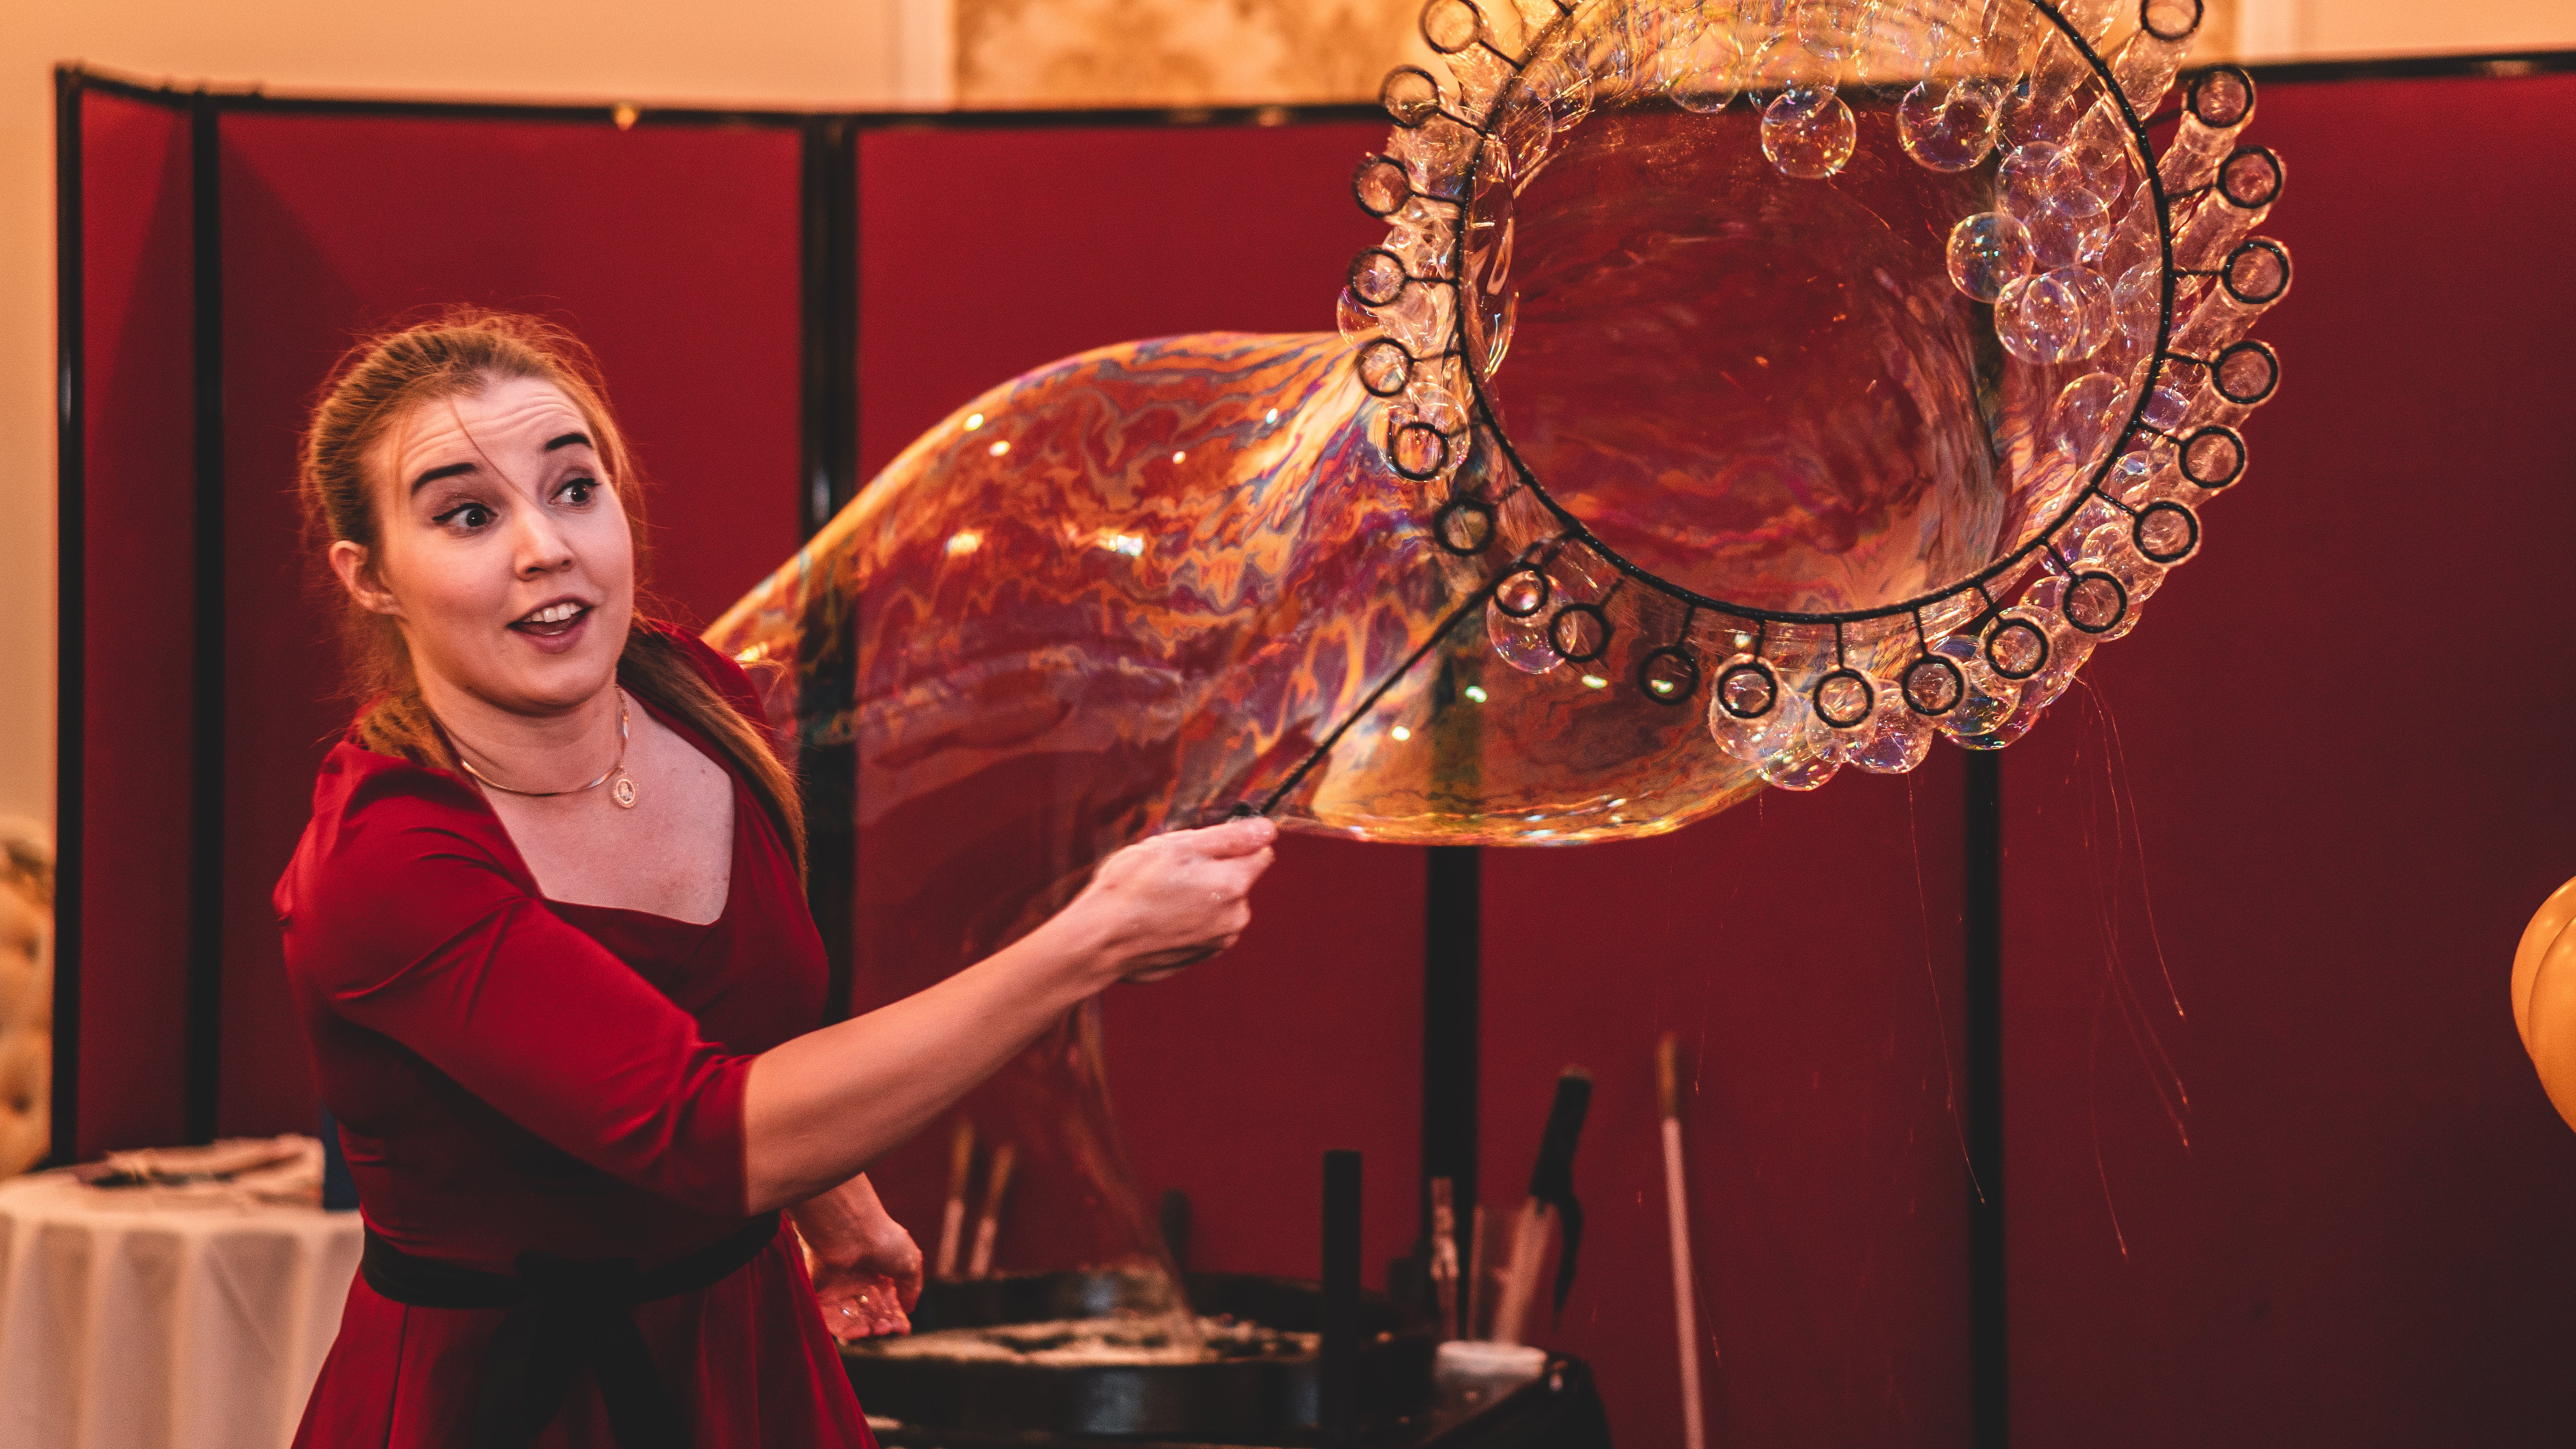 Woman Wearing Red Top Making Giant Bubble